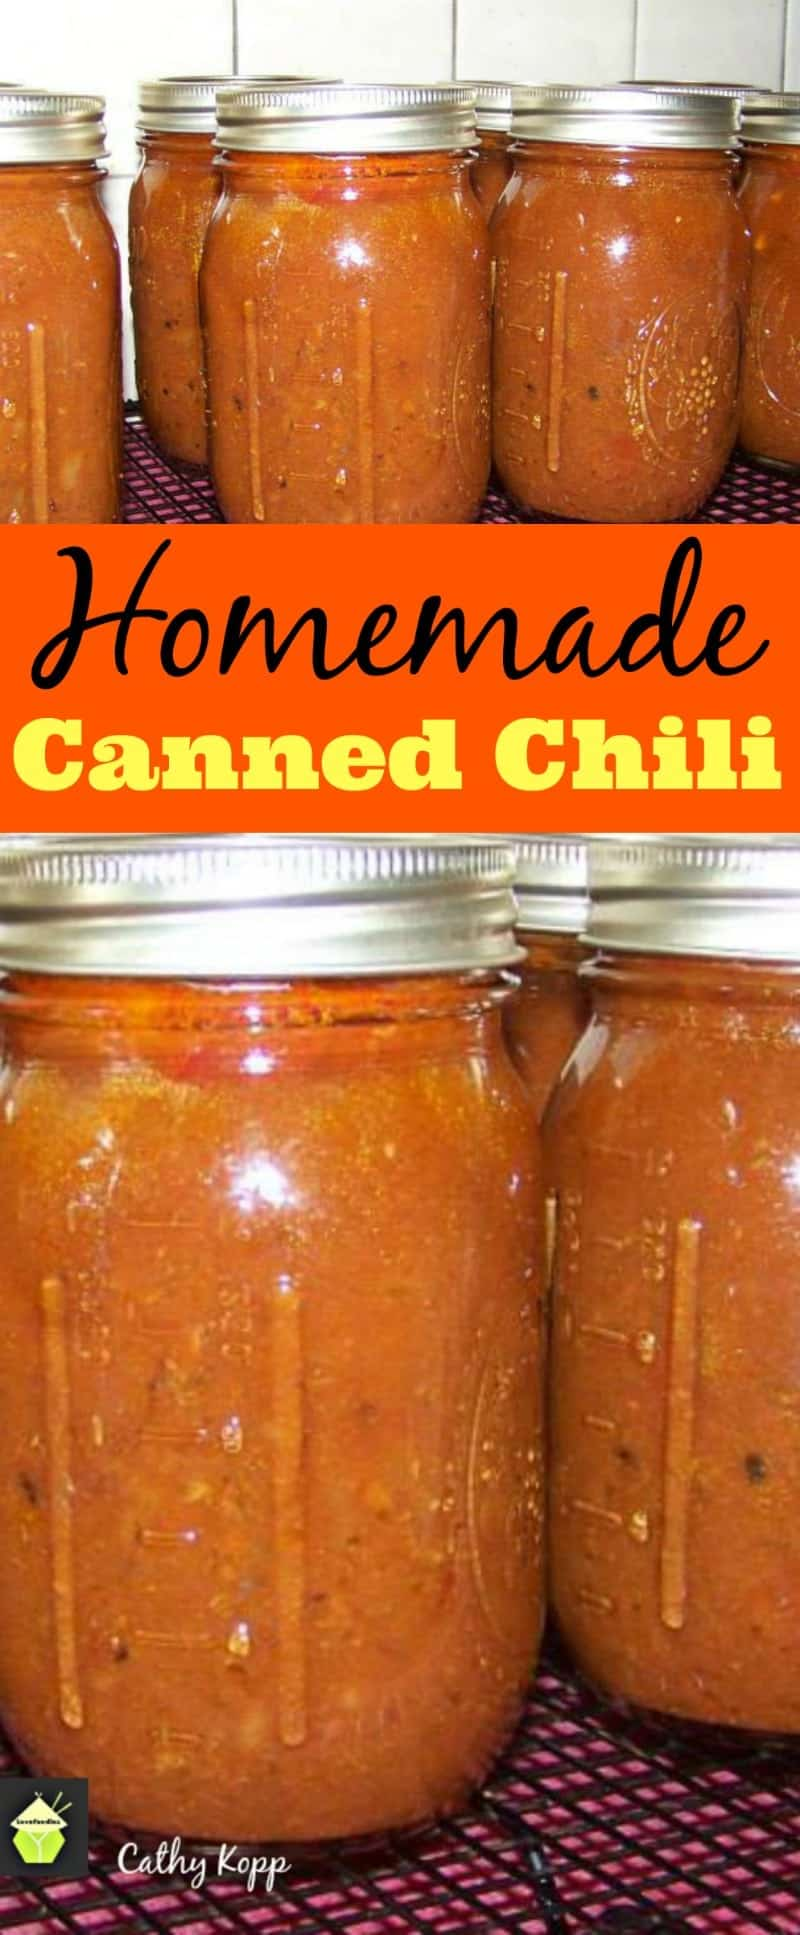 Homemade Canned Chili. A great way to get stocked up, handy for camping or when you just don't have time to cook!